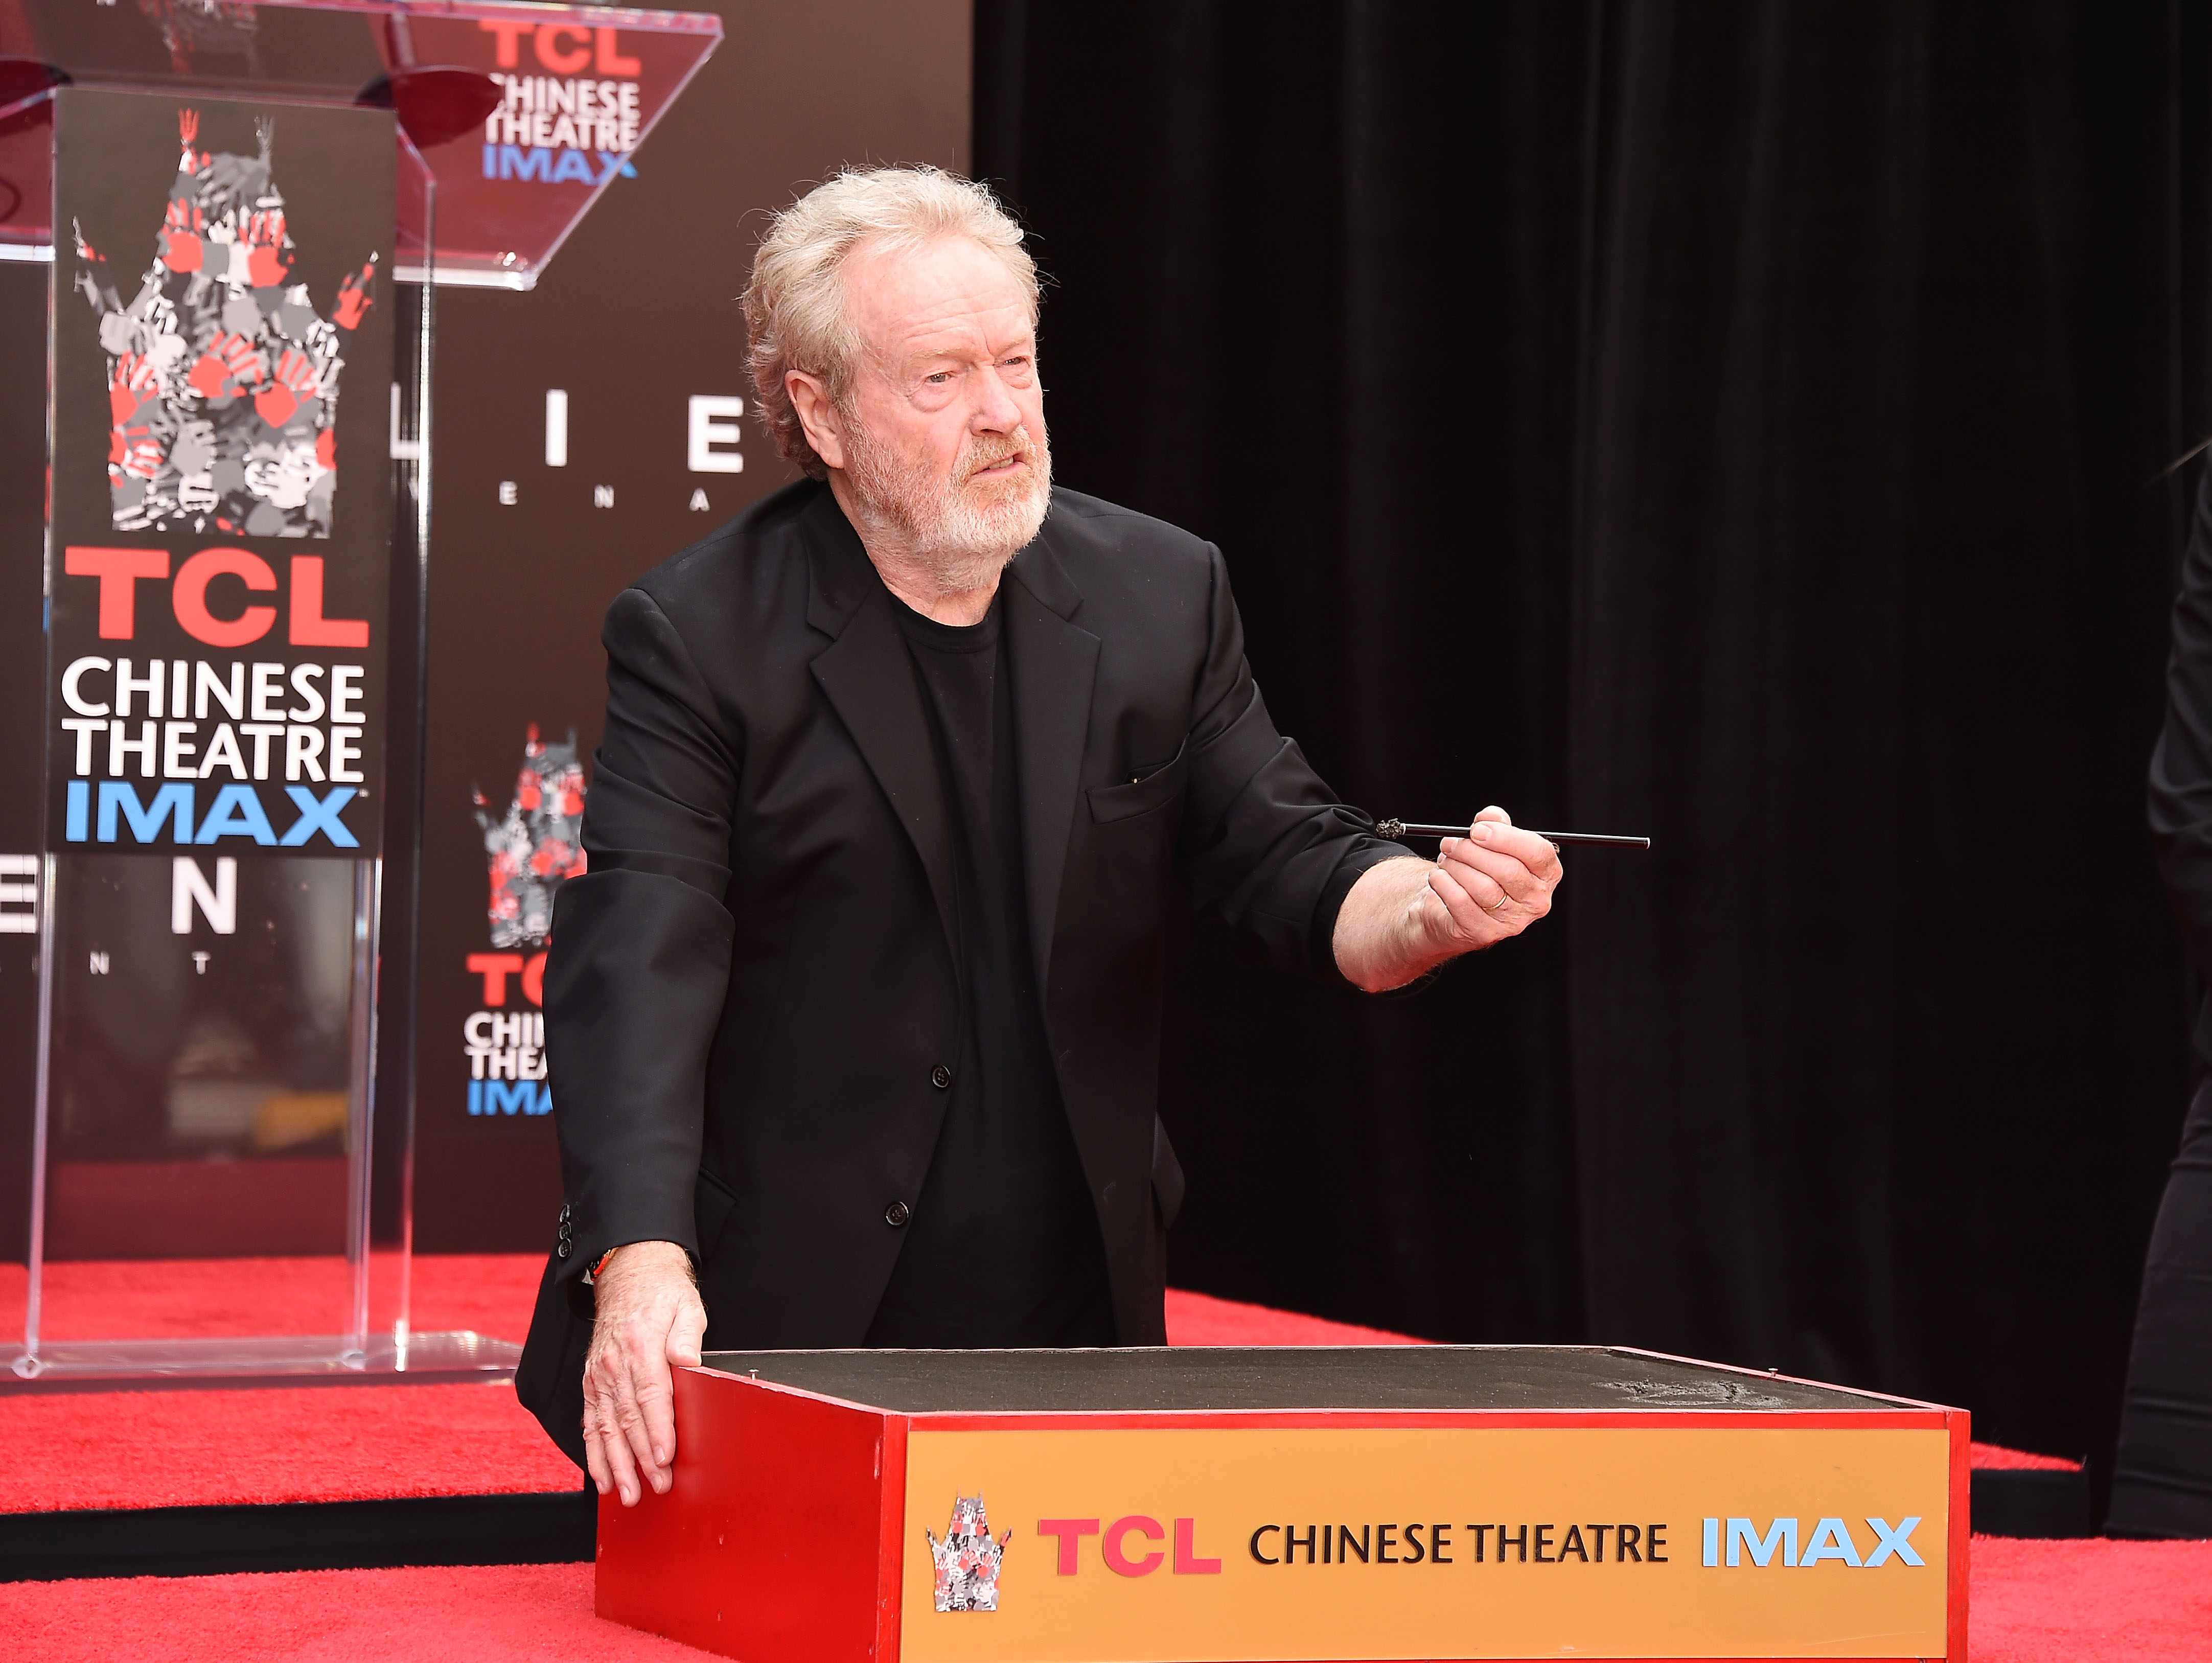 Director/producer Sir Ridley Scott attends the Sir Ridley Scott Hand and Footprint Ceremony at TCL Chinese Theatre IMAX on May 17, 2017 in Hollywood, California.